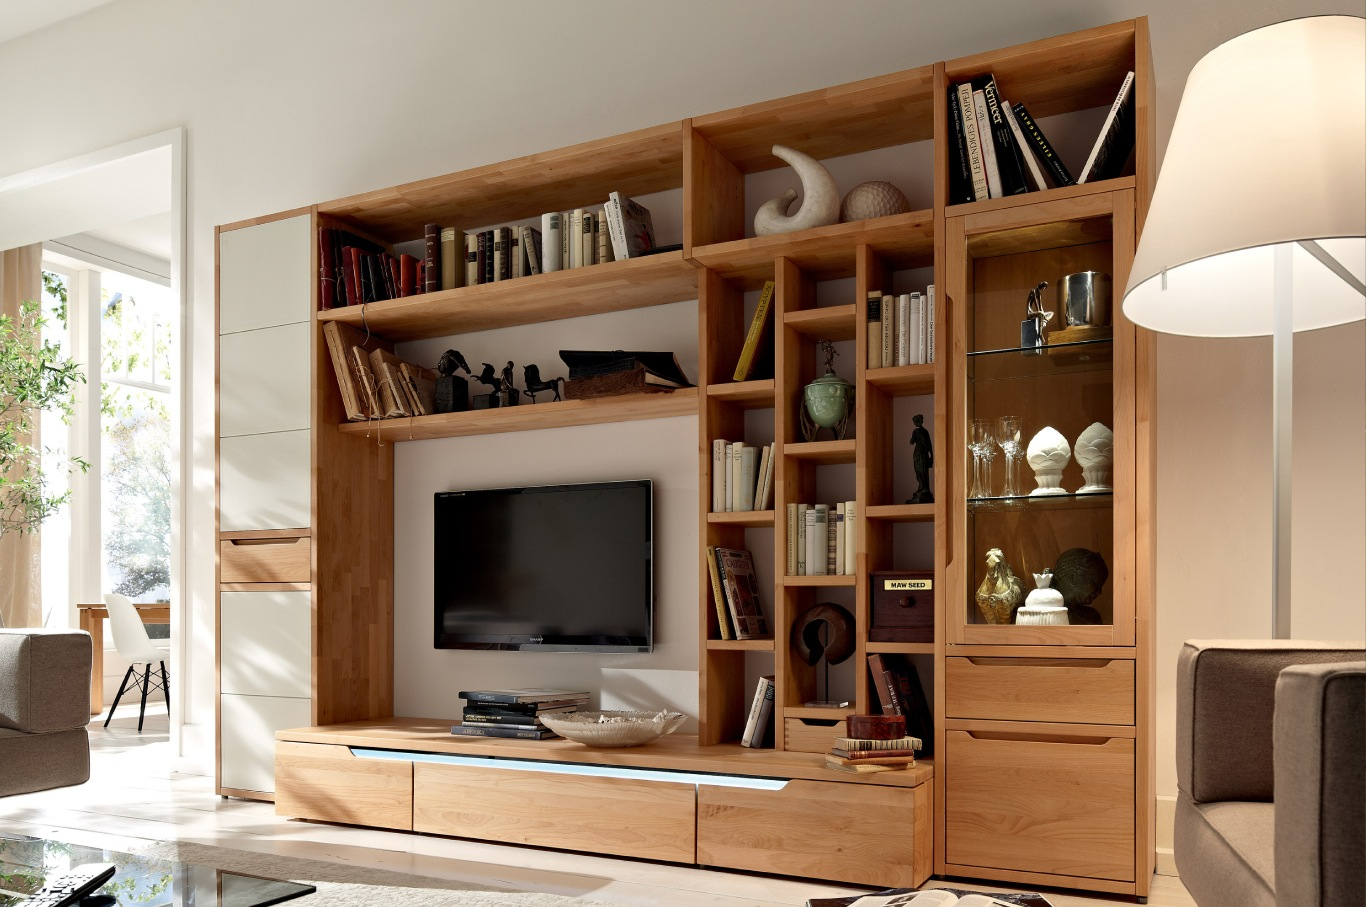 Drawn bookcase virtual Oak for with living Furniture: